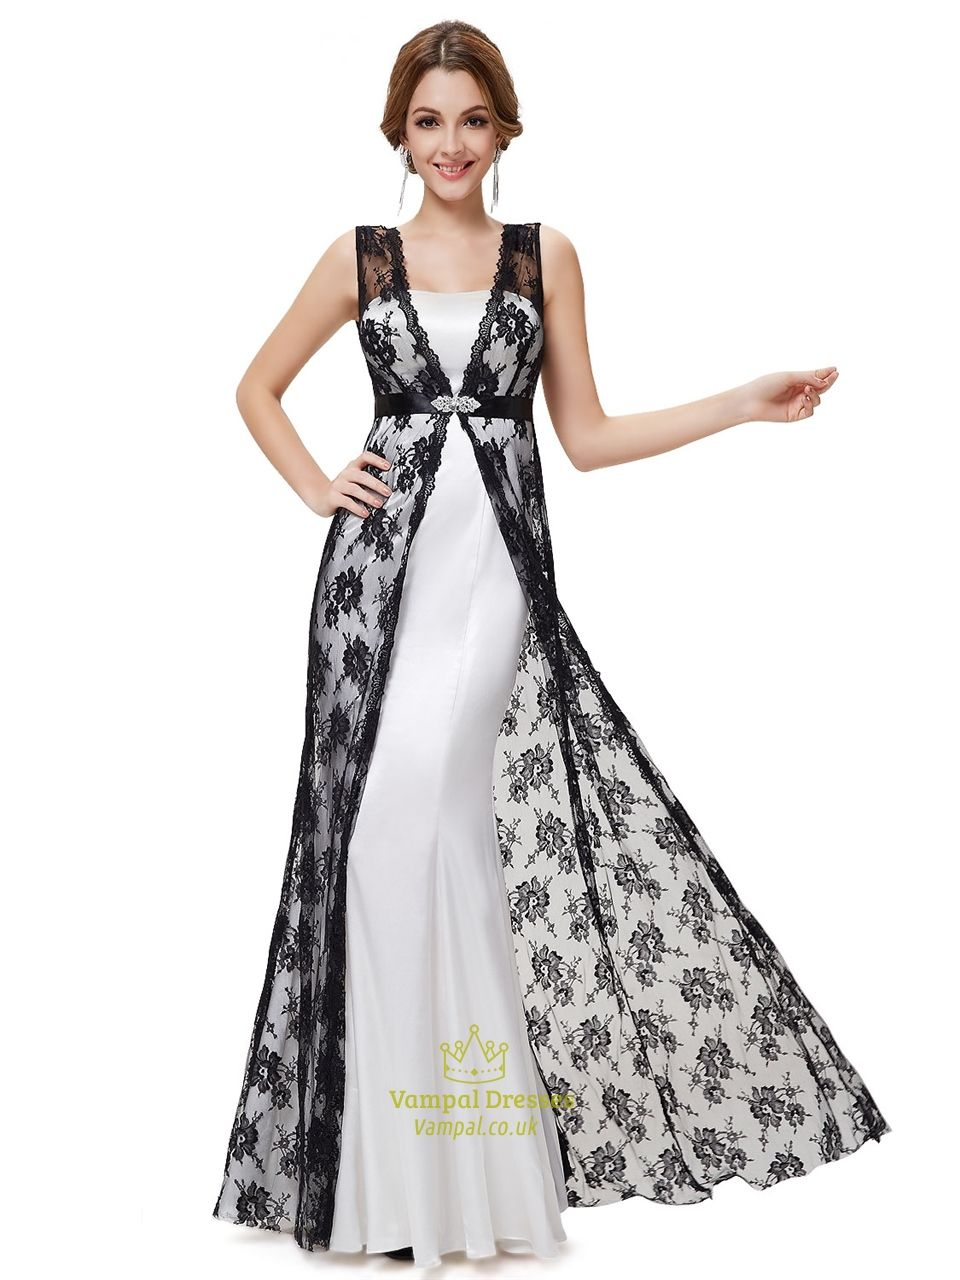 White Dress With Black Lace Overlay,White Strapless Dress With Black ...